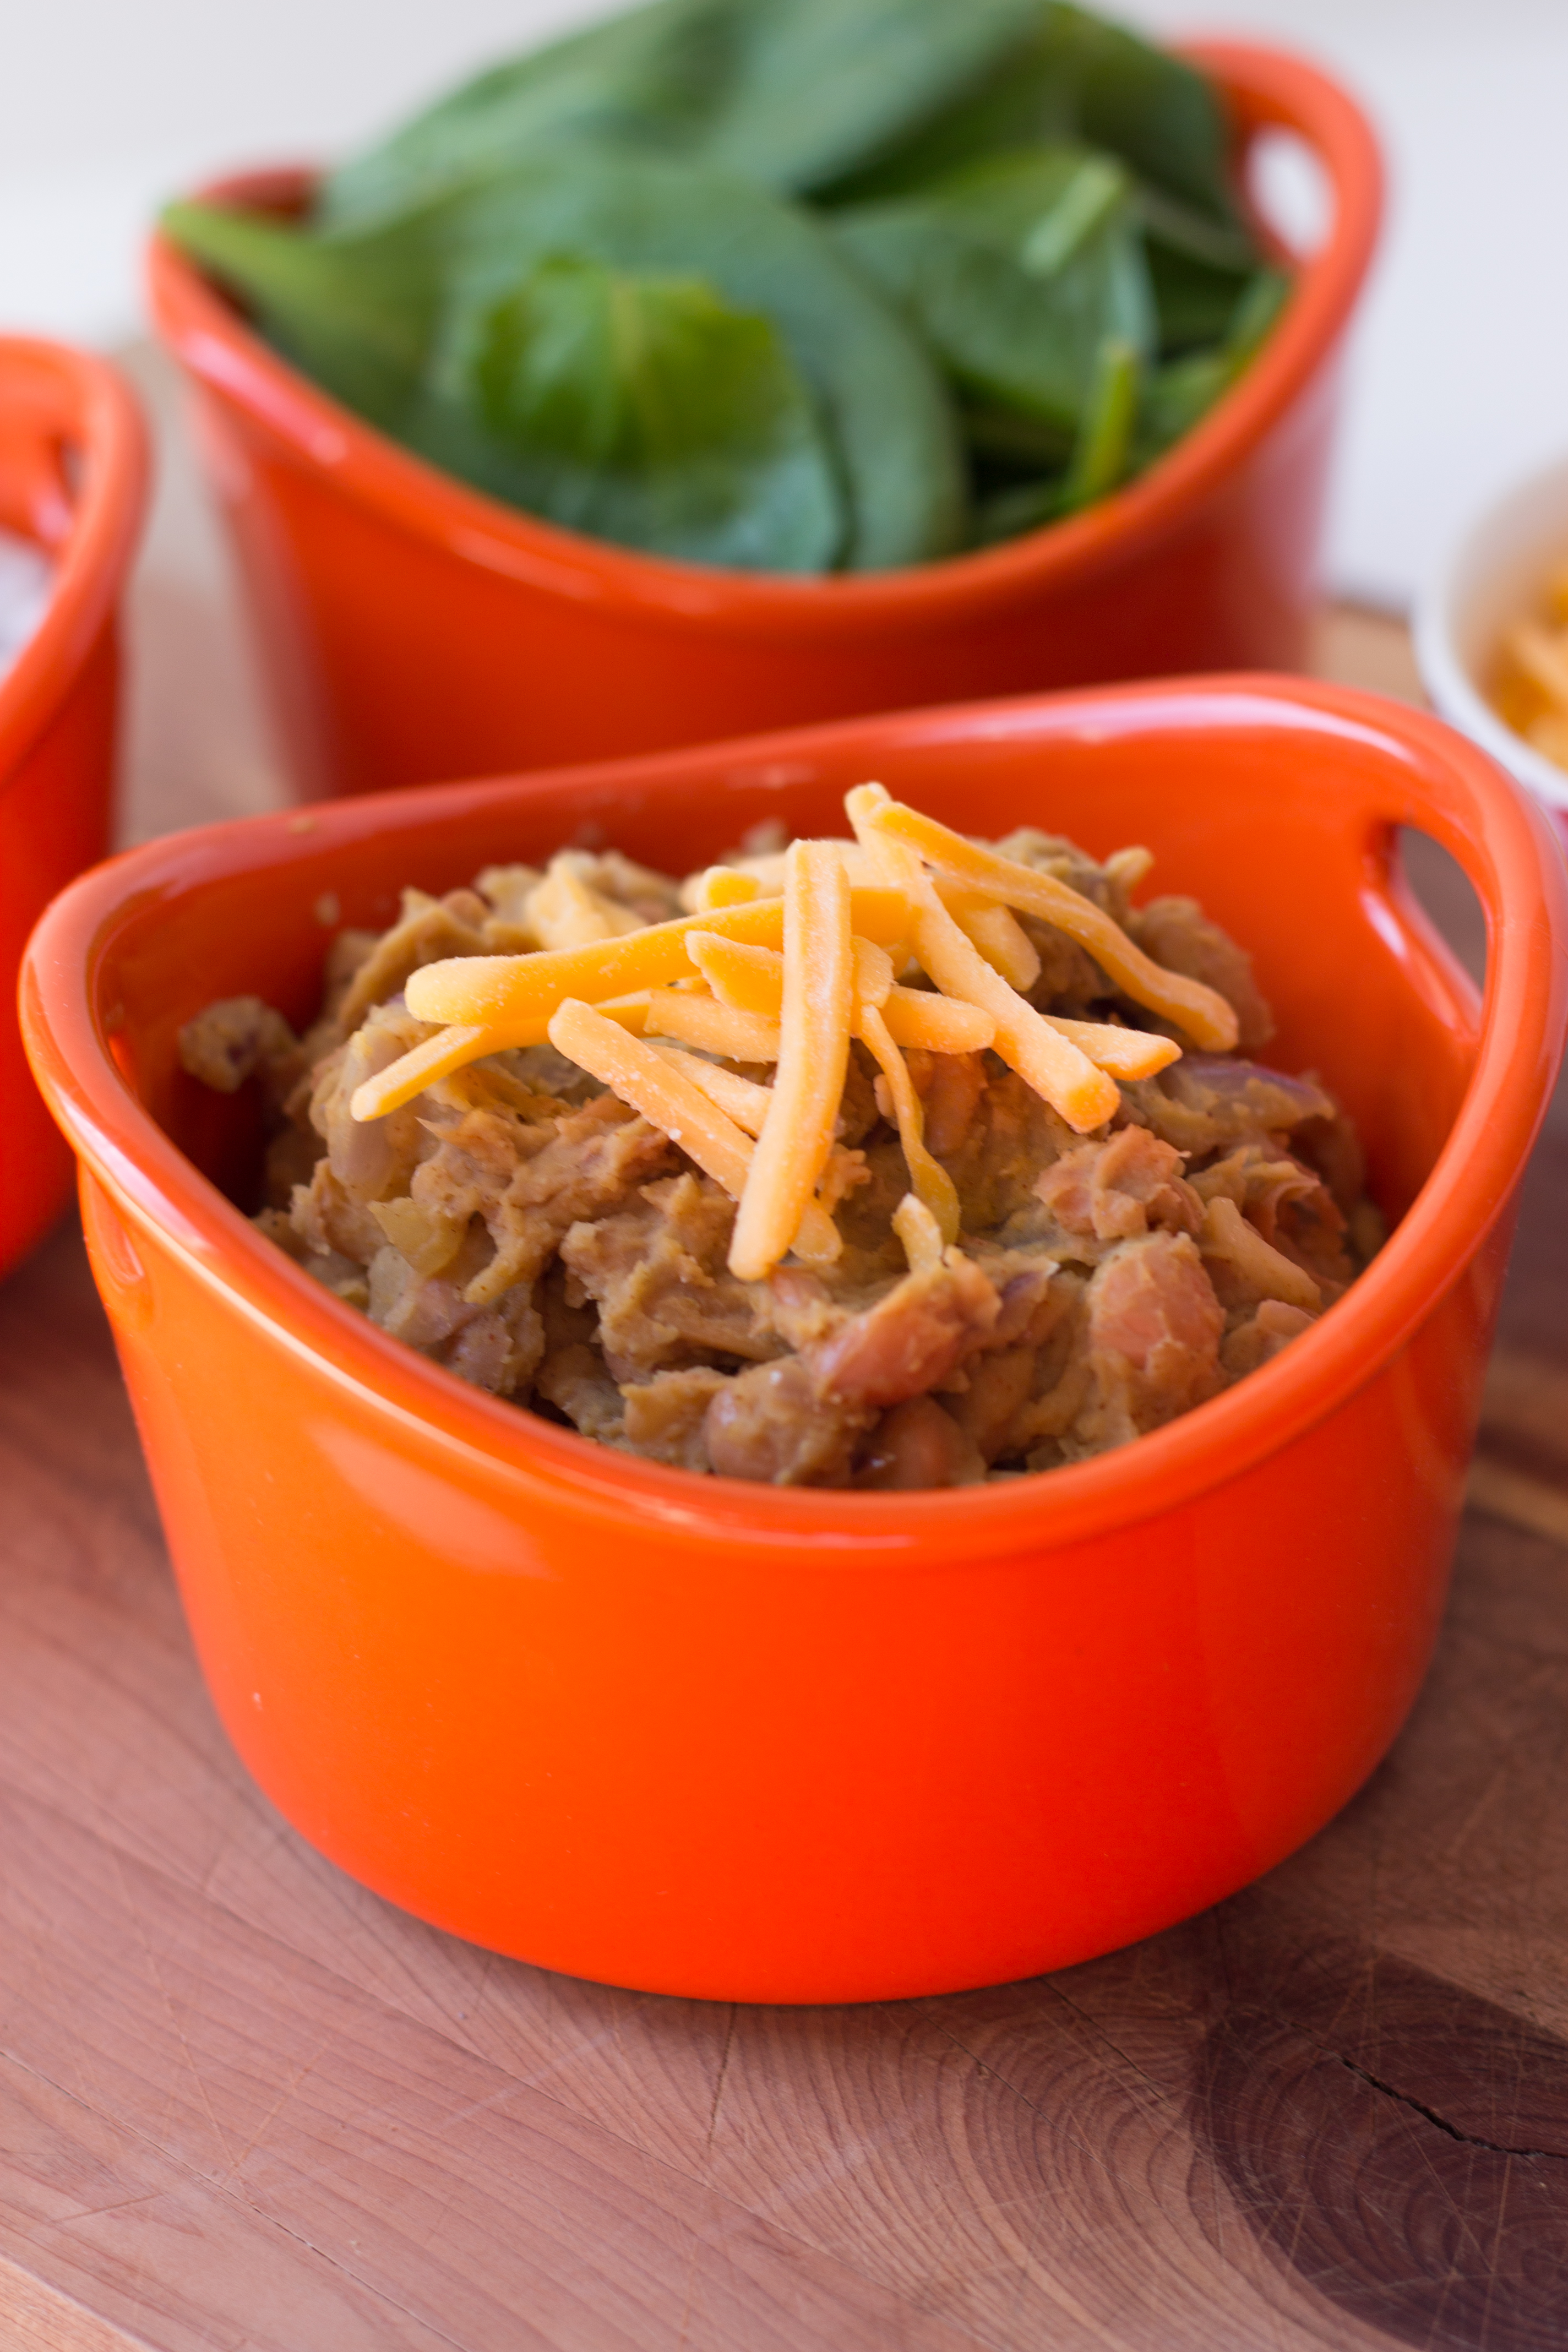 Hearty 'N Healthy Refried Beans